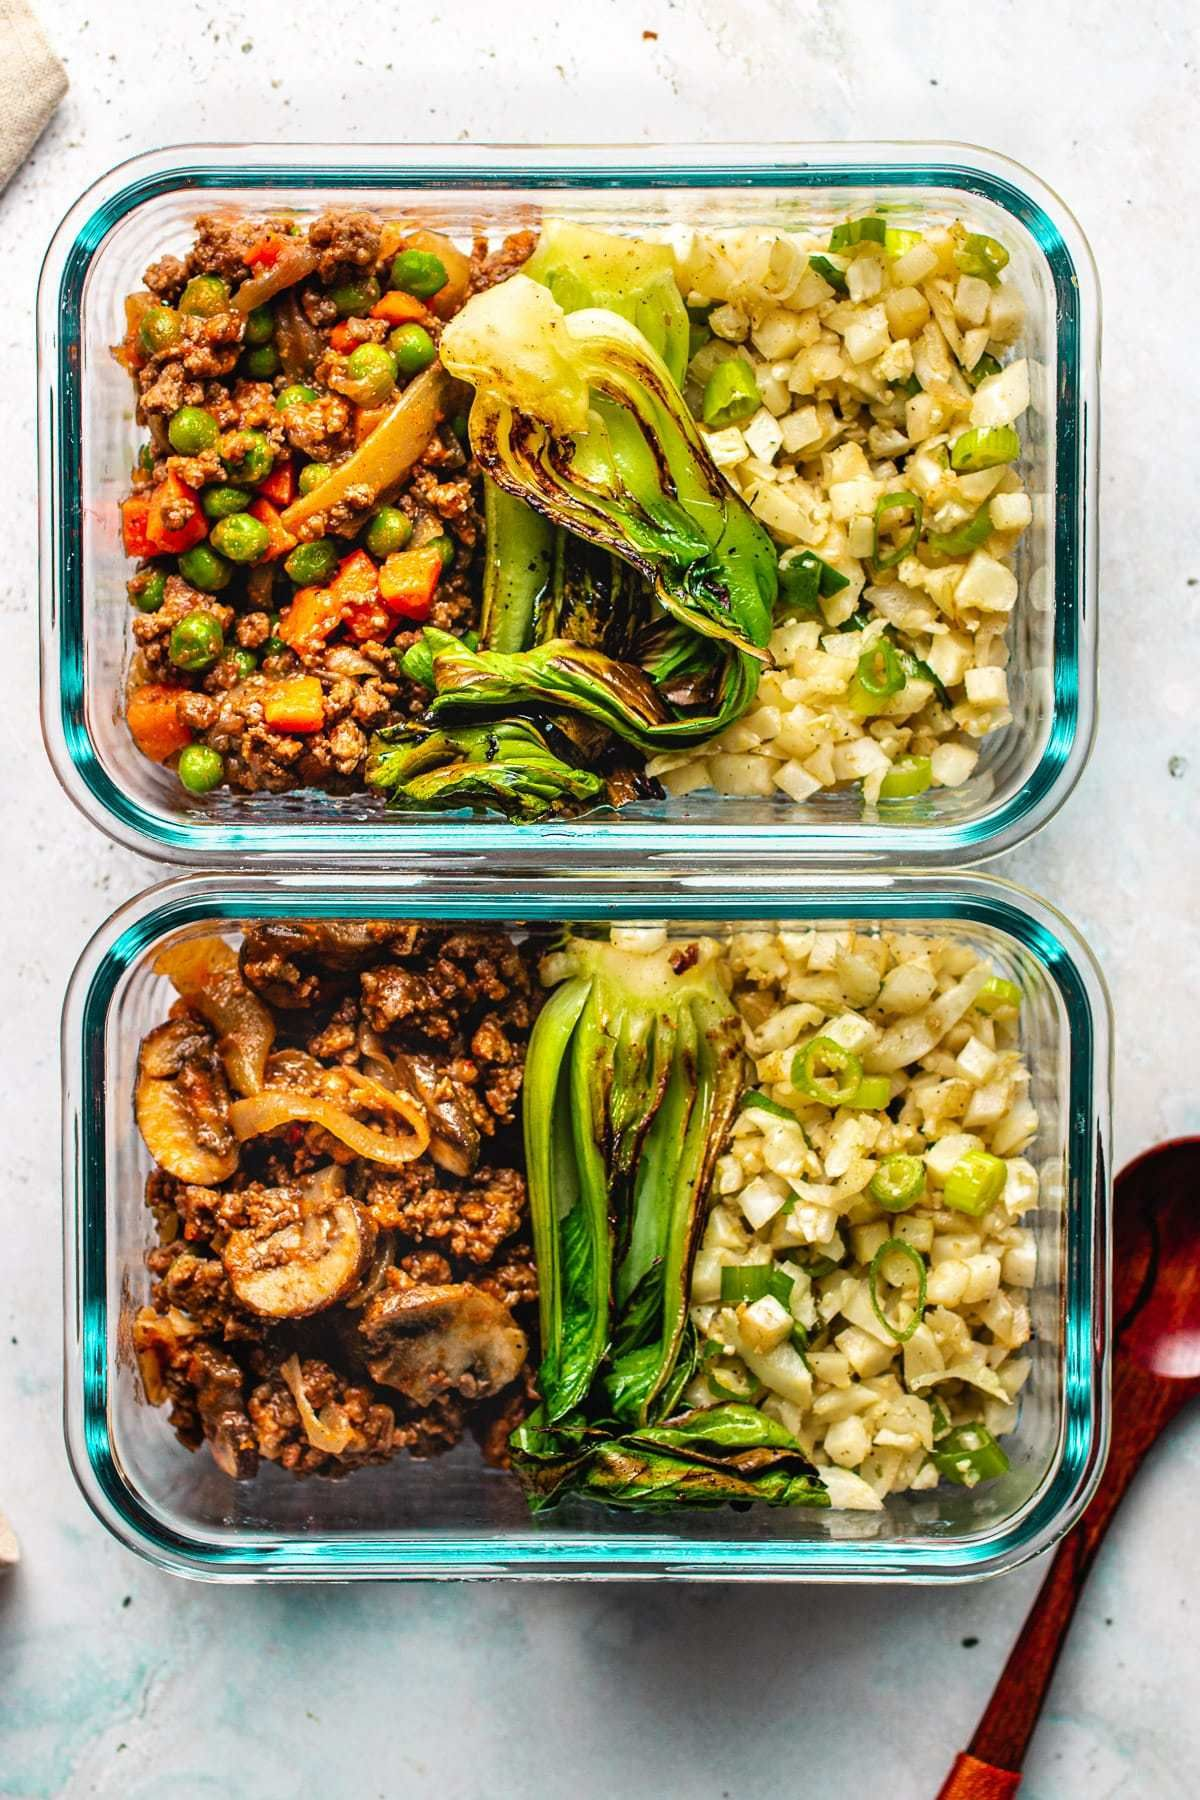 Easy ground beef meal prep recipe paleo whole30